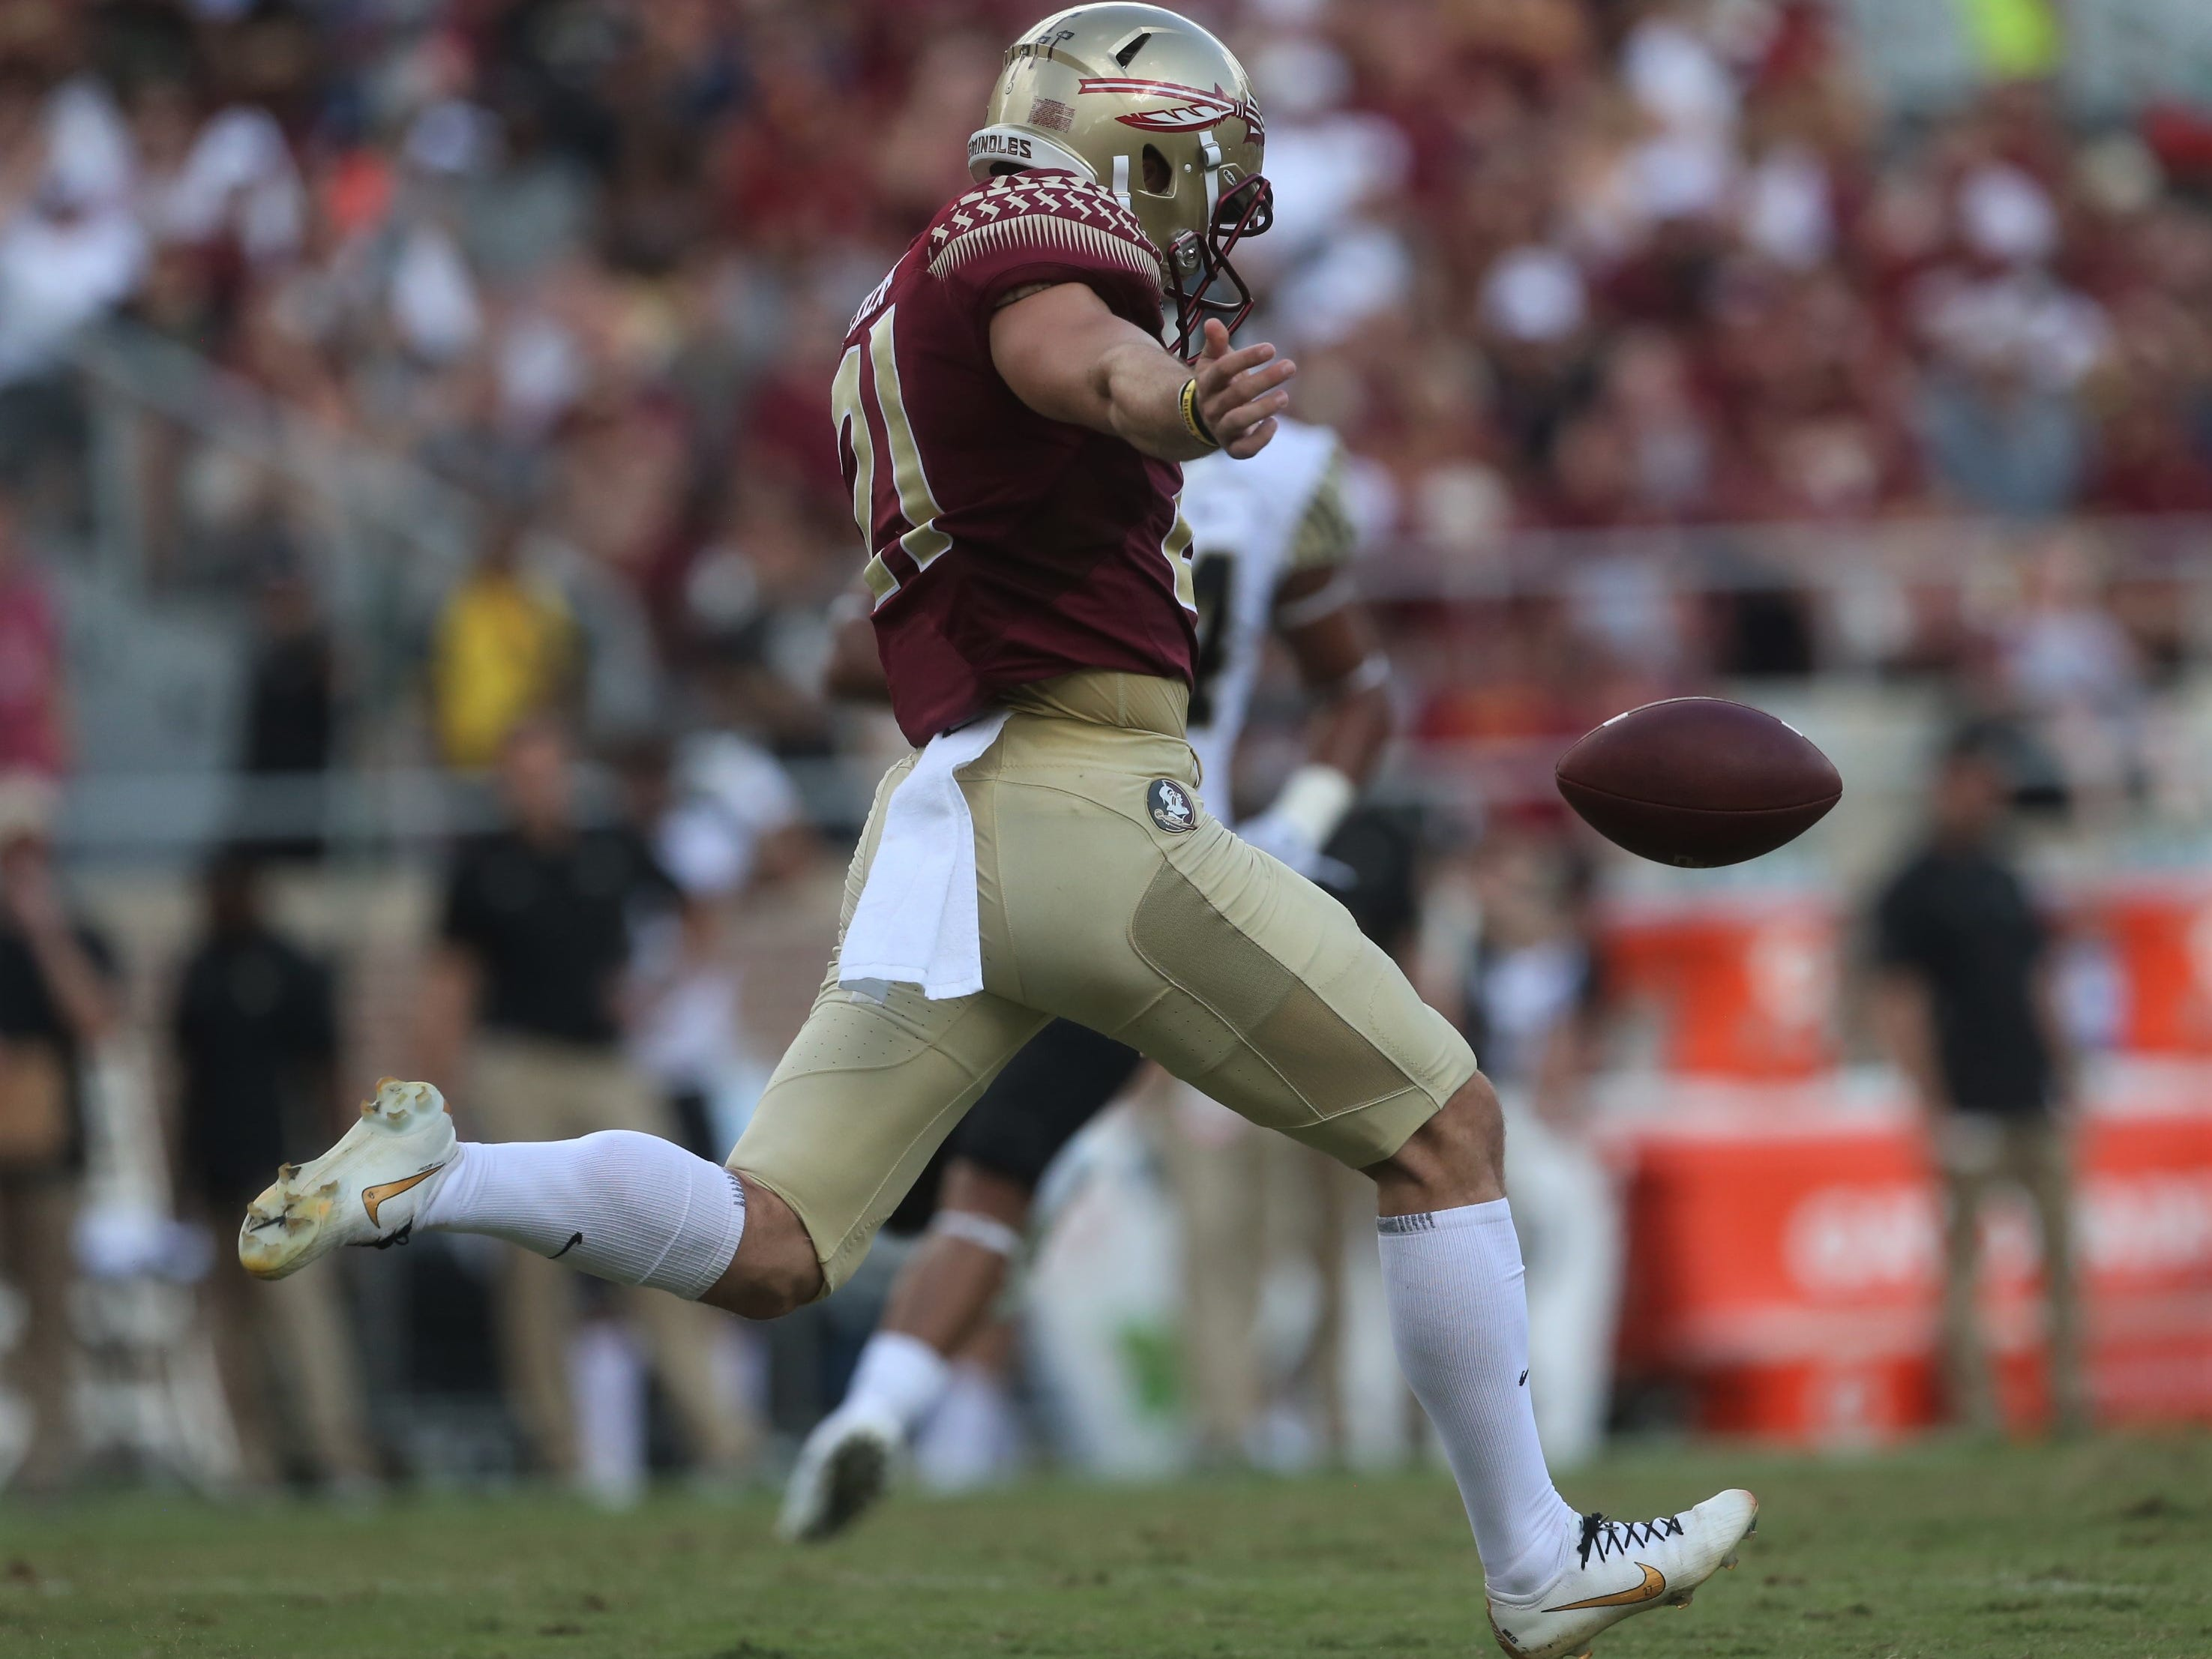 Florida State punter Logan Tyler prepares to boom a punt against Wake Forest during a game at Doak Campbell Stadium on Saturday, Oct. 20, 2018.